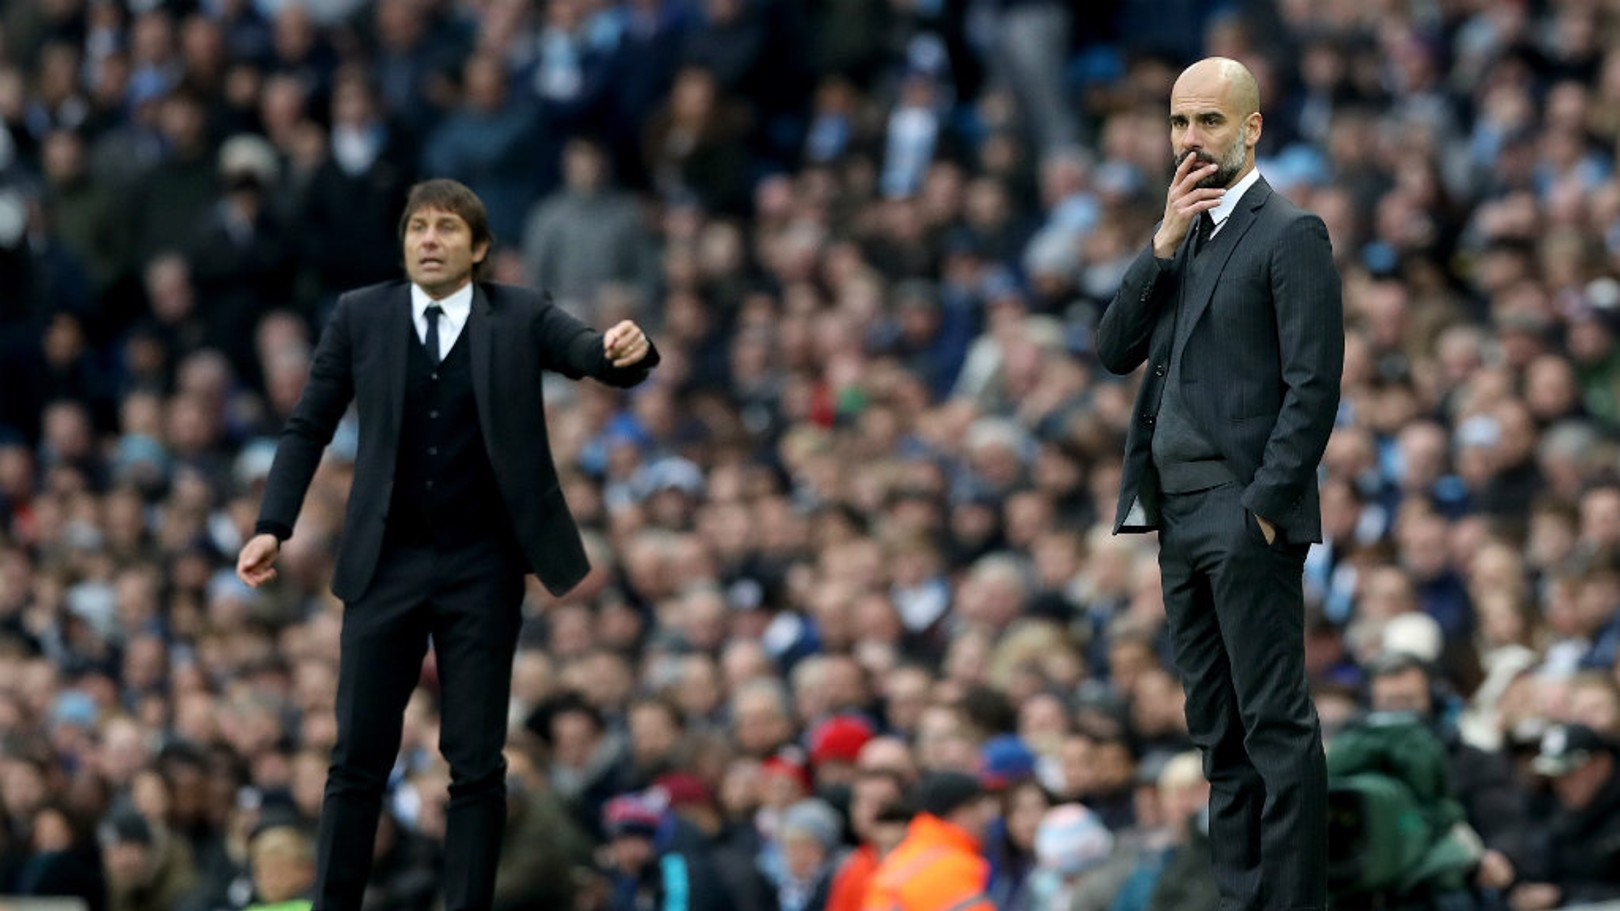 TOUCHLINE: Pep Guardiola and Antonio Conte watch the action.